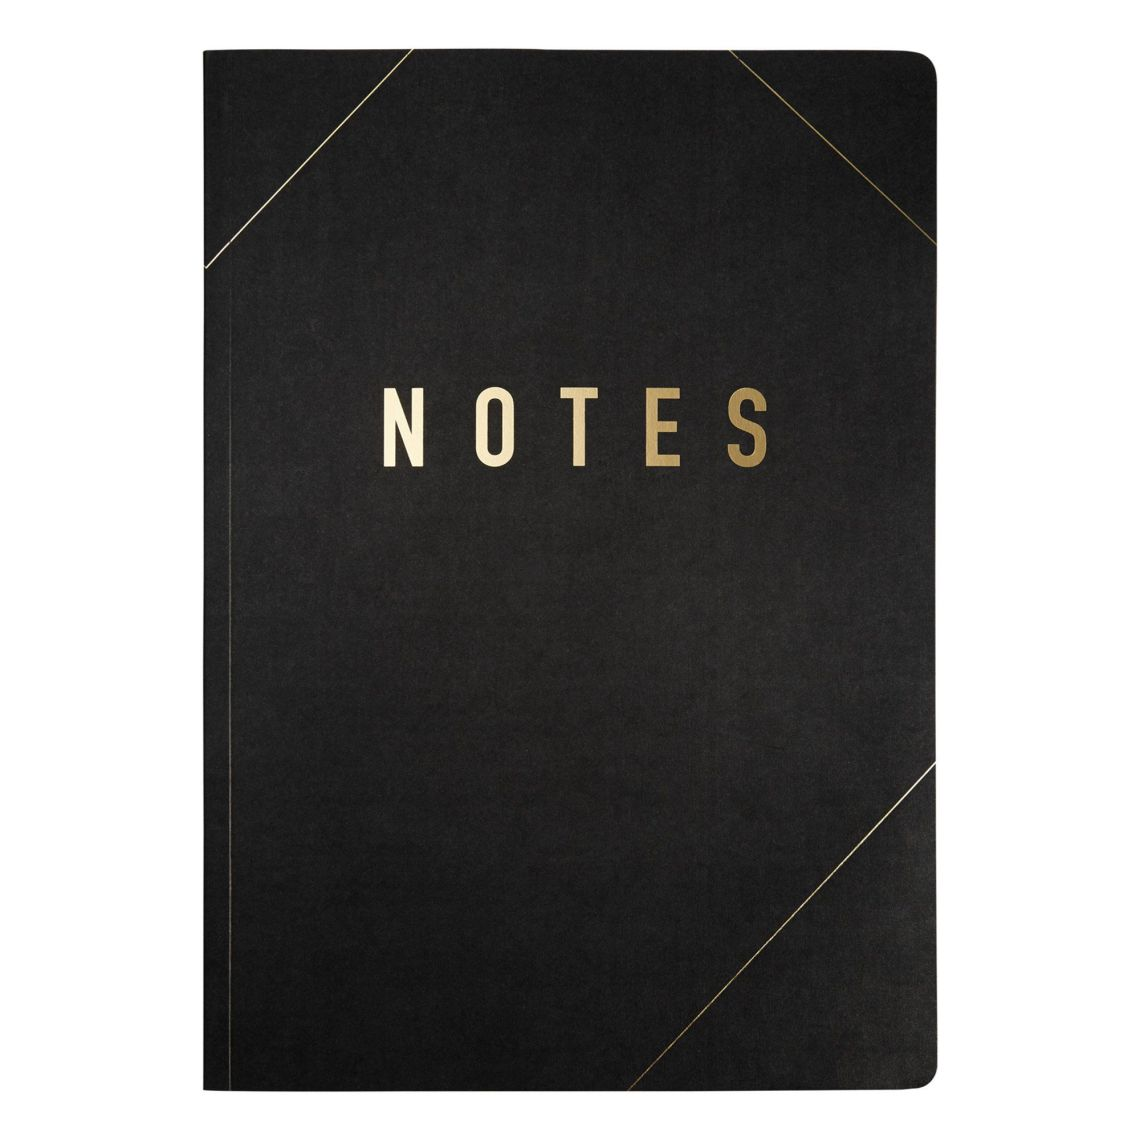 For those who have a lot to write down or fancy a nice big brainstorm, grab this bargain lined A4 planner which has space on the top of each page to write the subject/date of your notes. Organised to the max. Kikki K. £7.50.